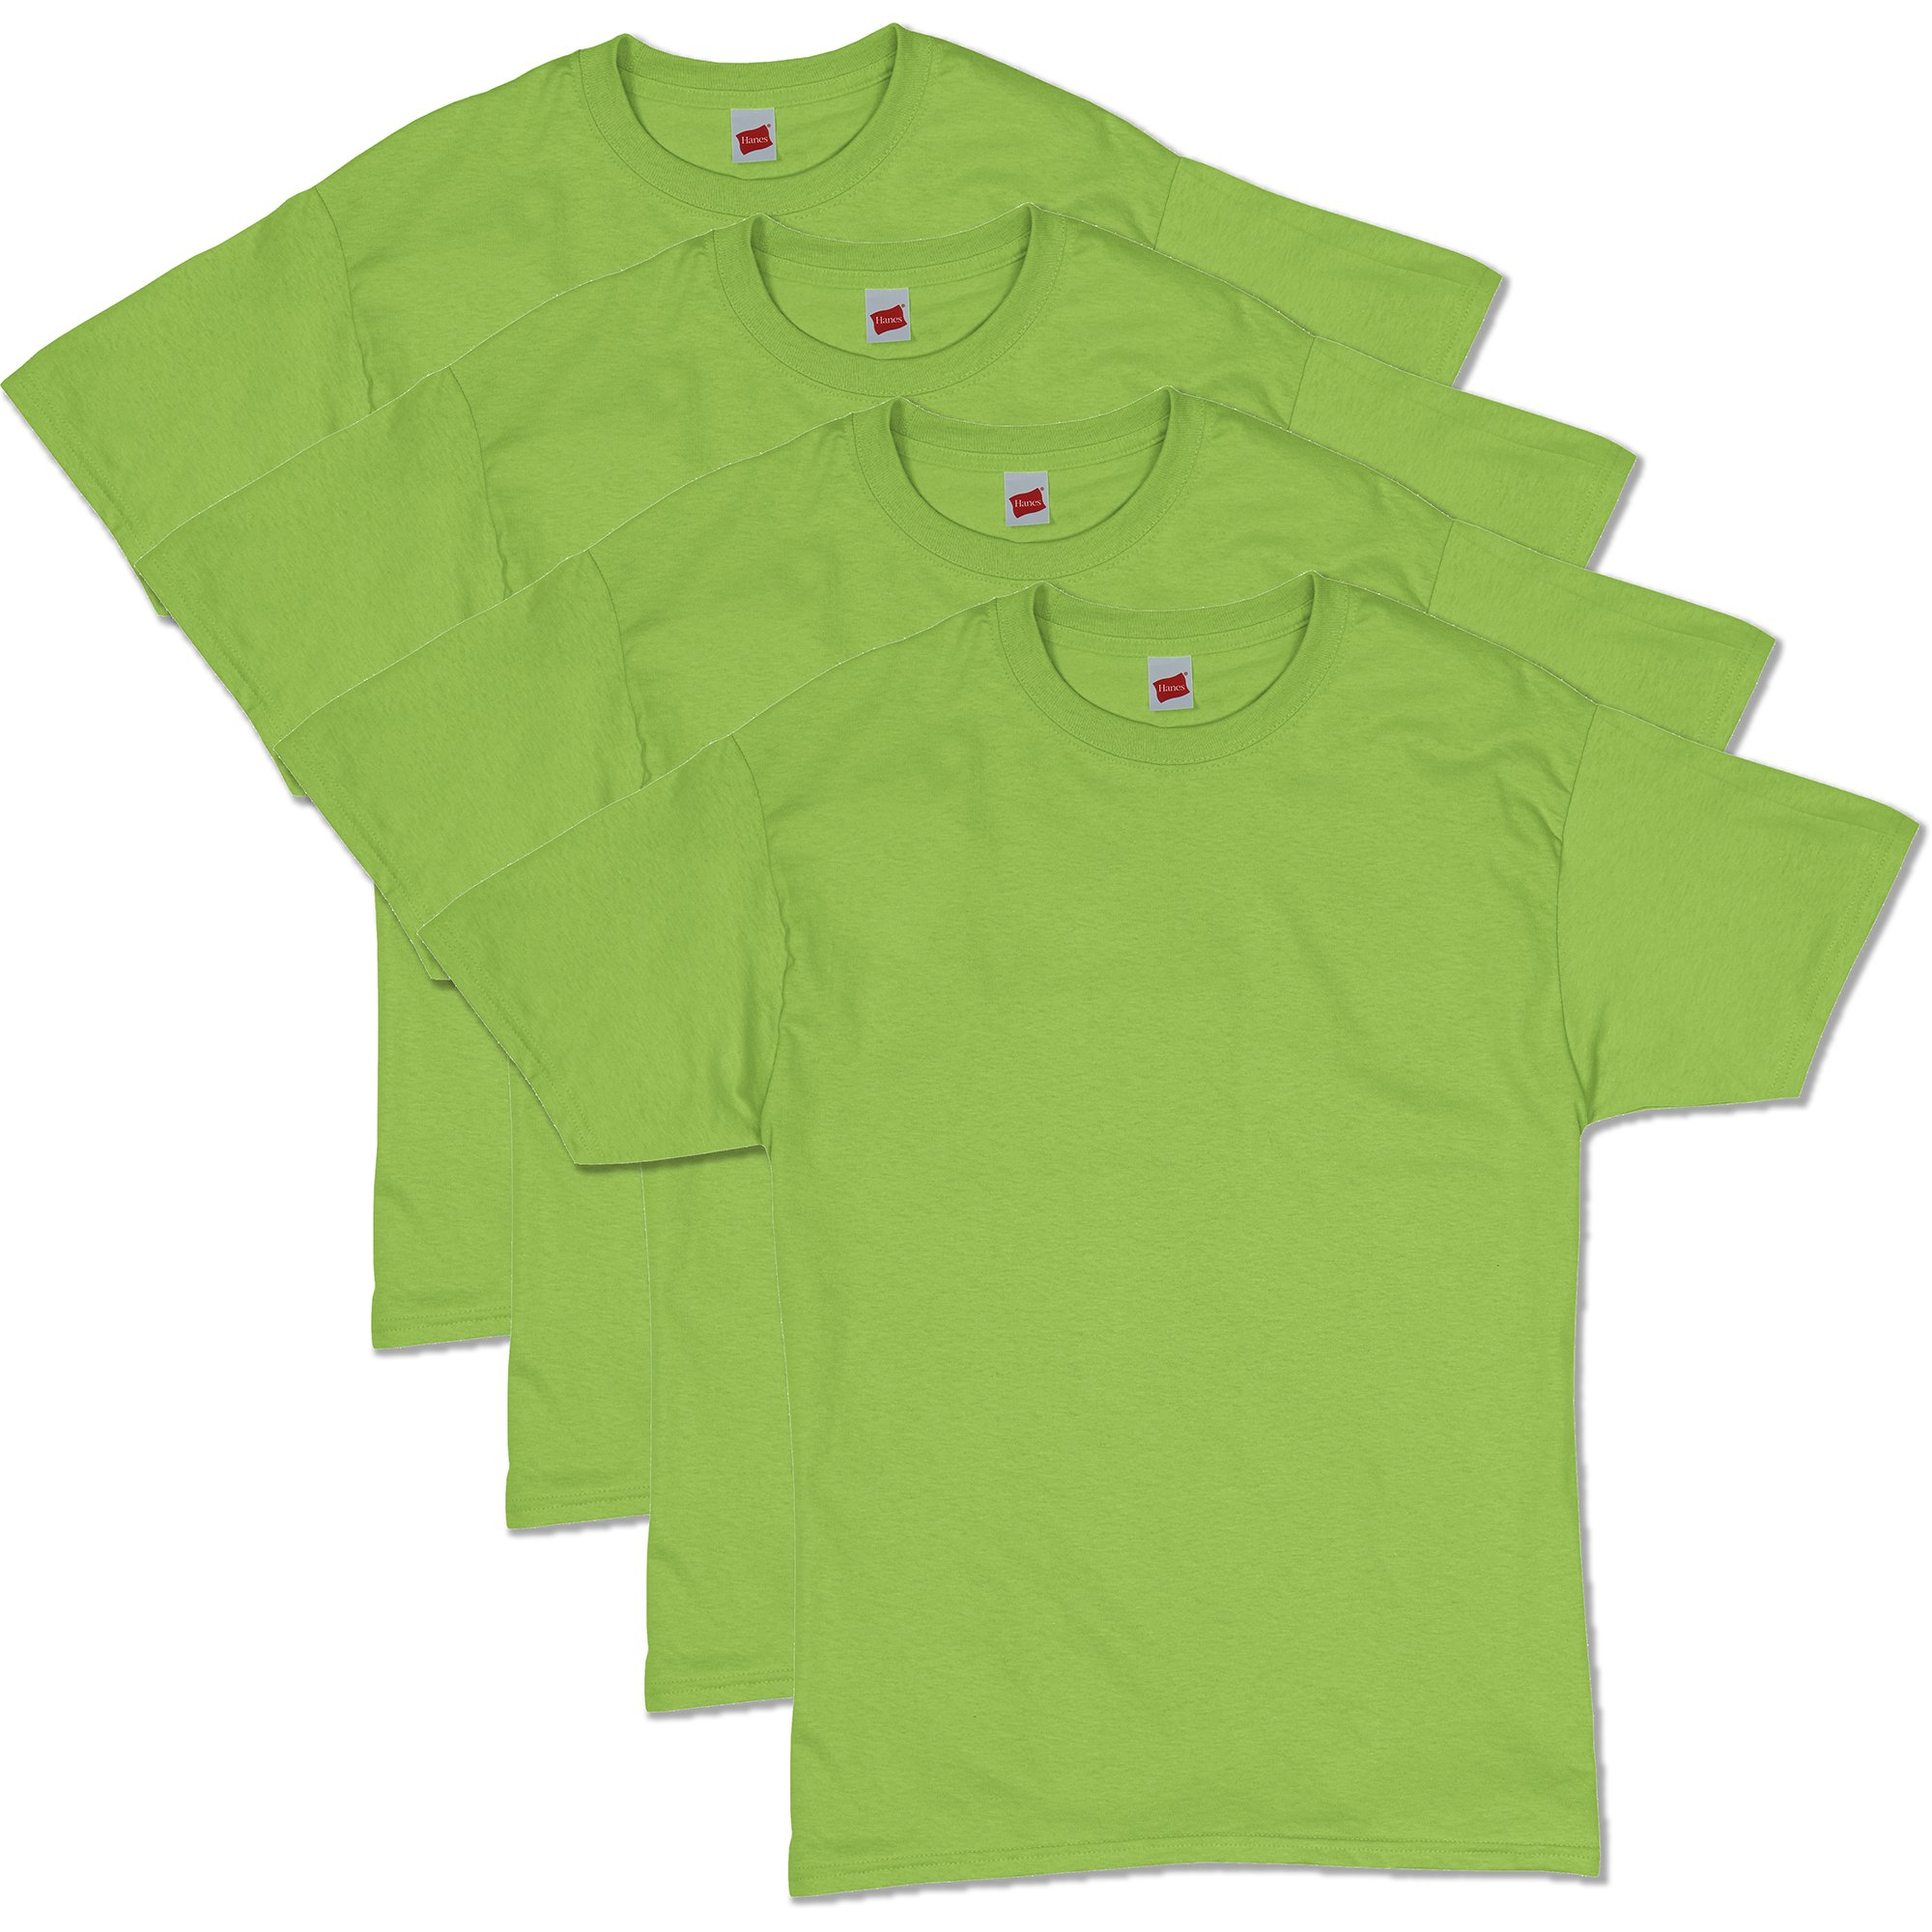 Hanes Men's Comfortsoft T-Shirt (Pack Of 4),Lime,3X-Large